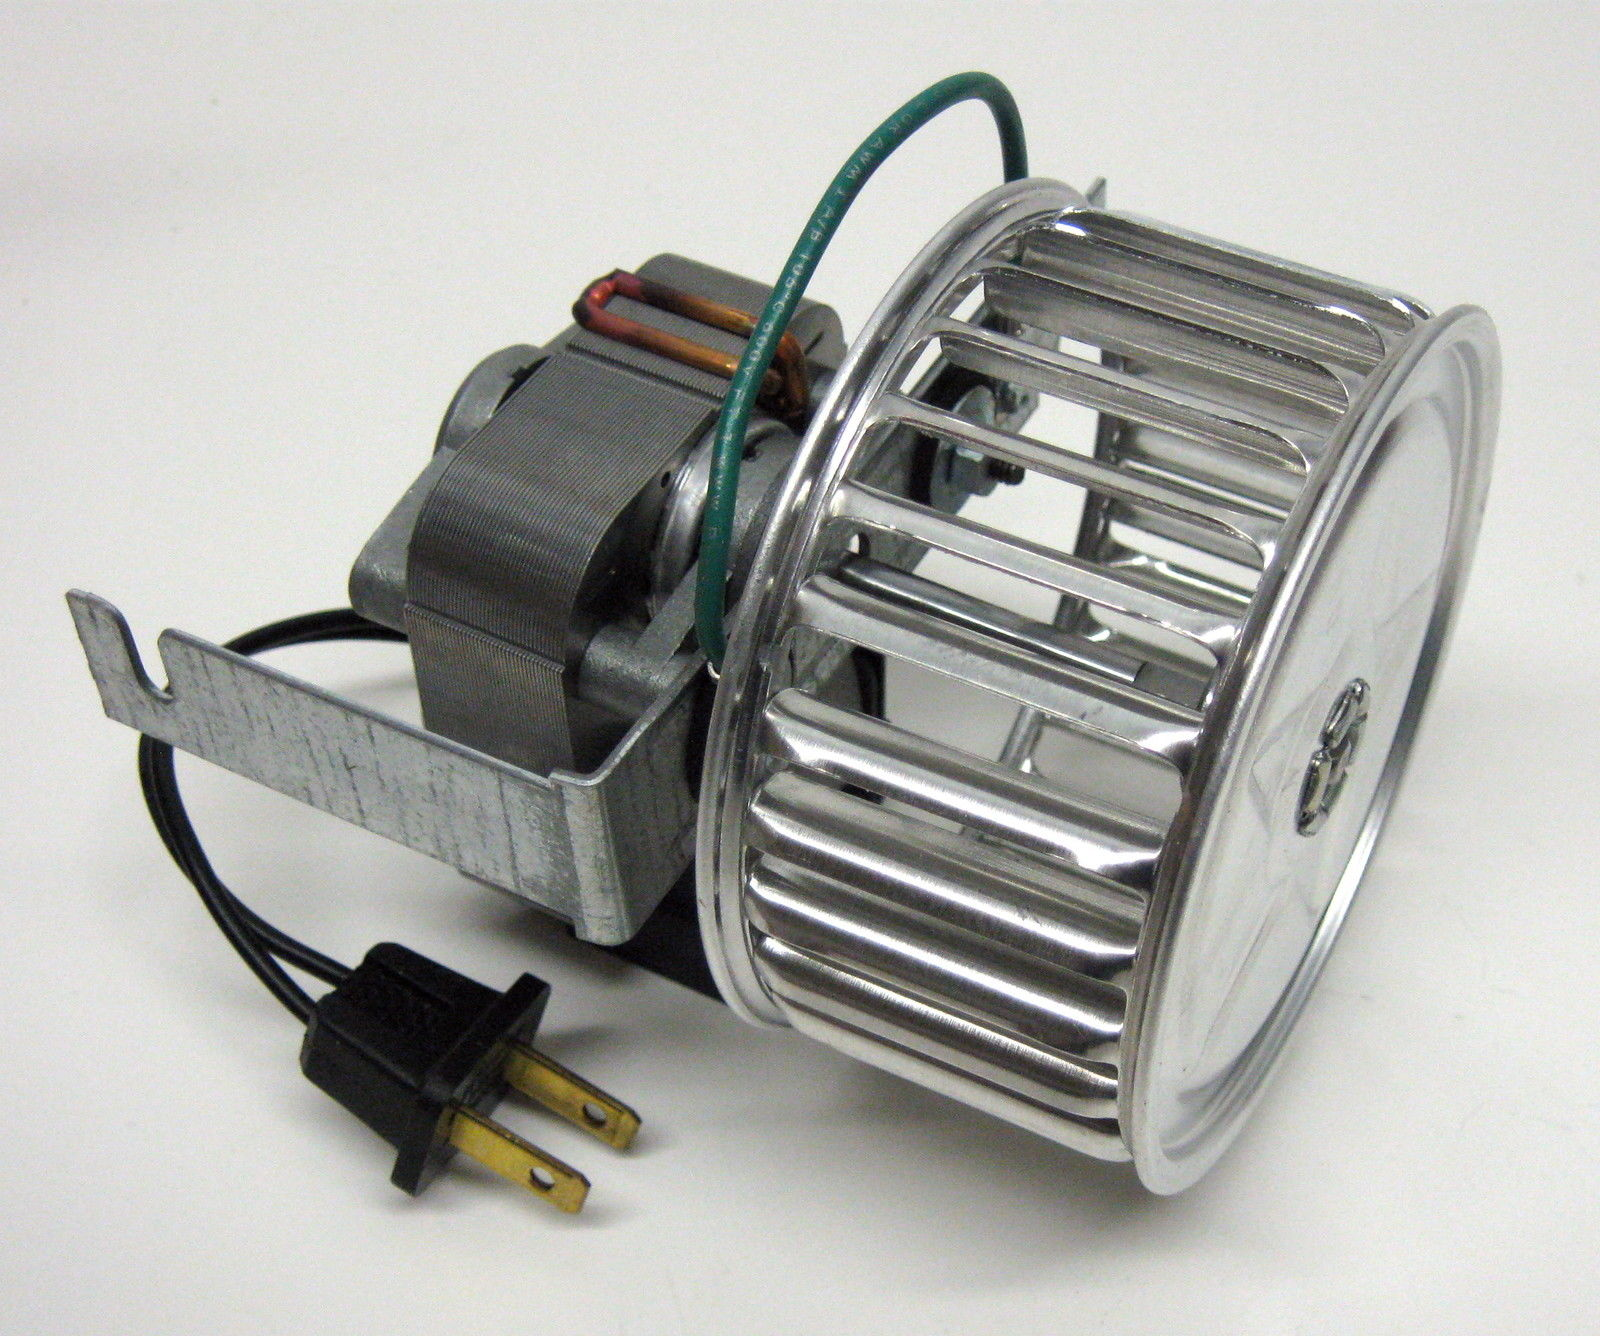 genuine nutone broan oem vent bath fan motor for model c82230 - Broan Exhaust Fans